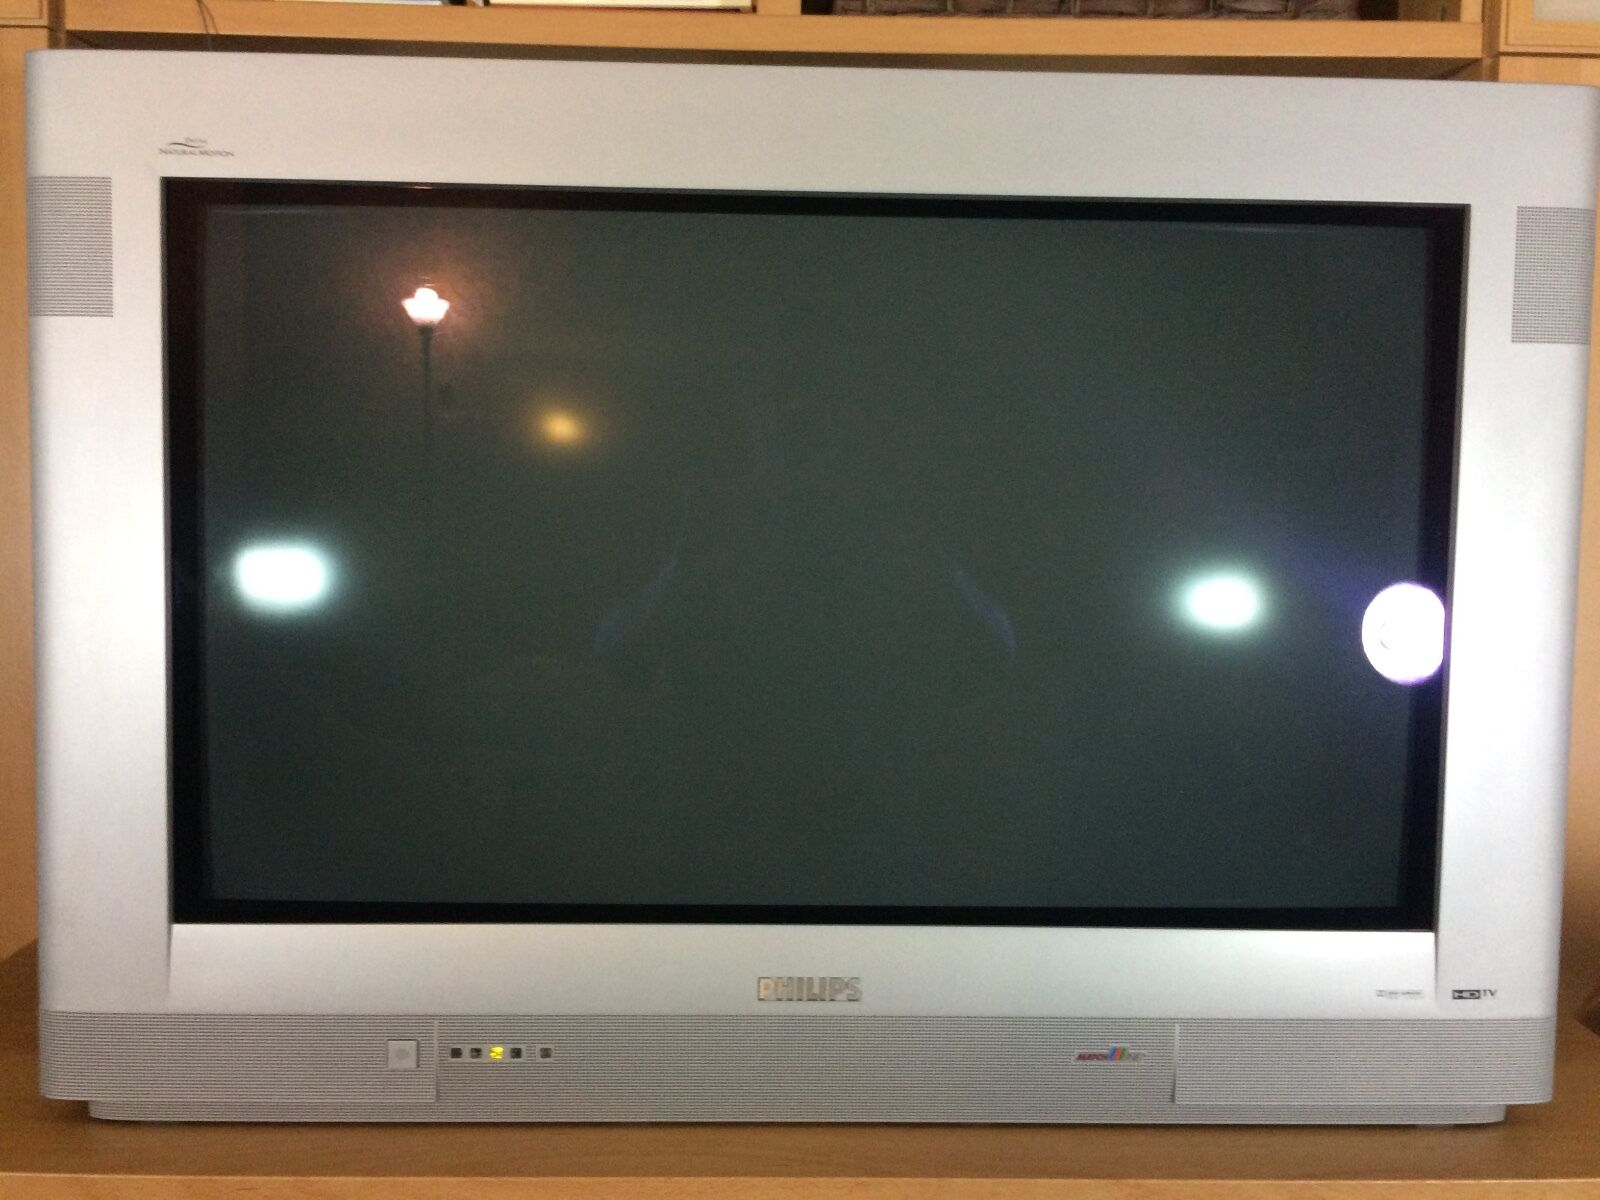 """Philips 34PW9817 34"""" 1080i HD CRT Television"""